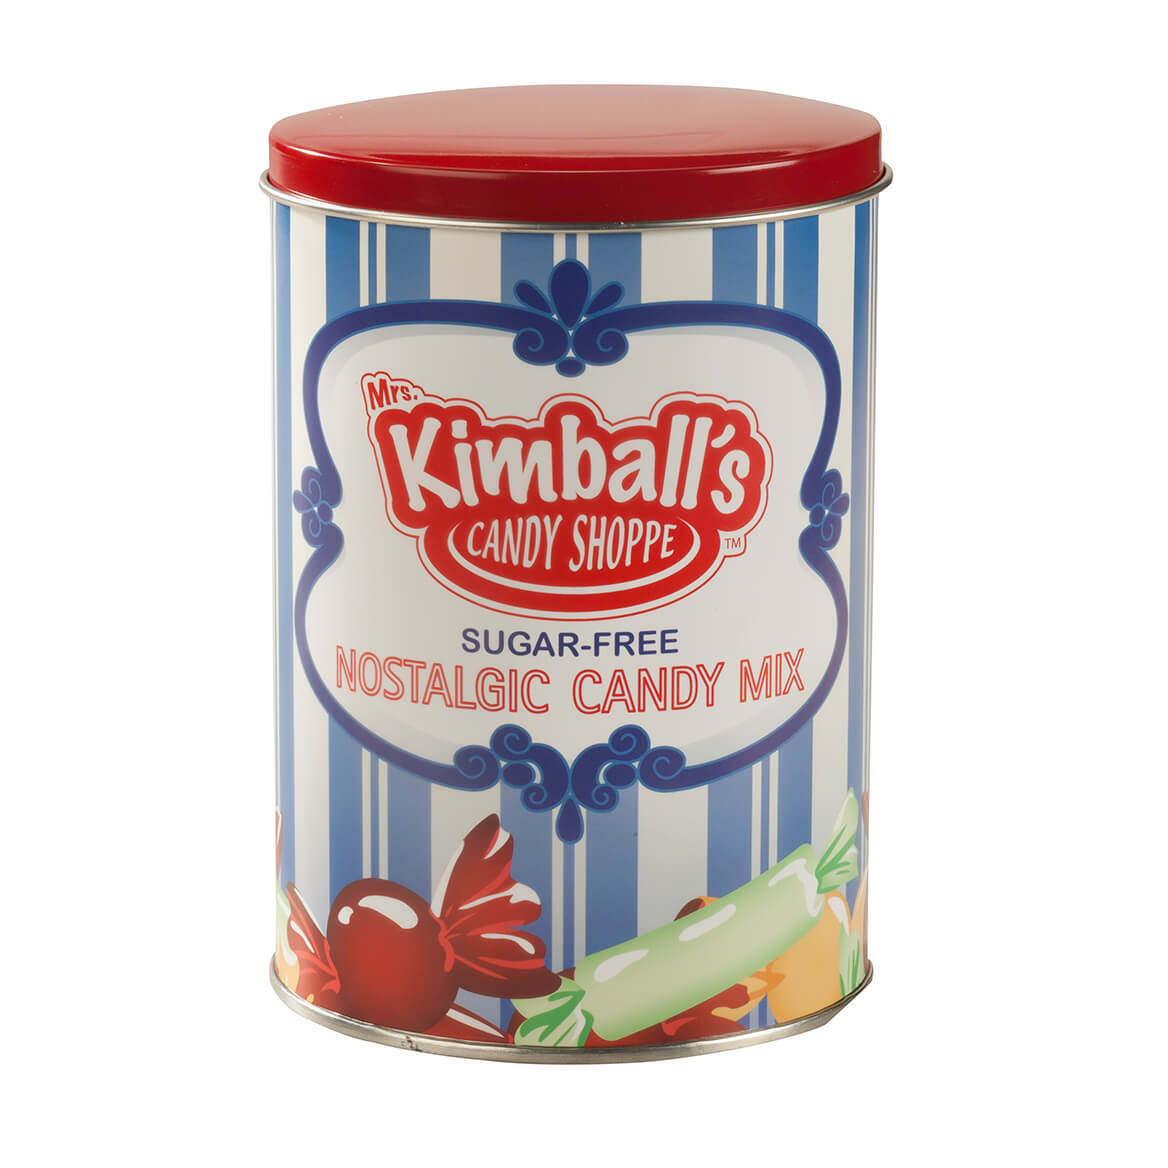 Sugar-Free Nostalgic Candy Tin by Mrs. Kimball's Candy Shopp-364291